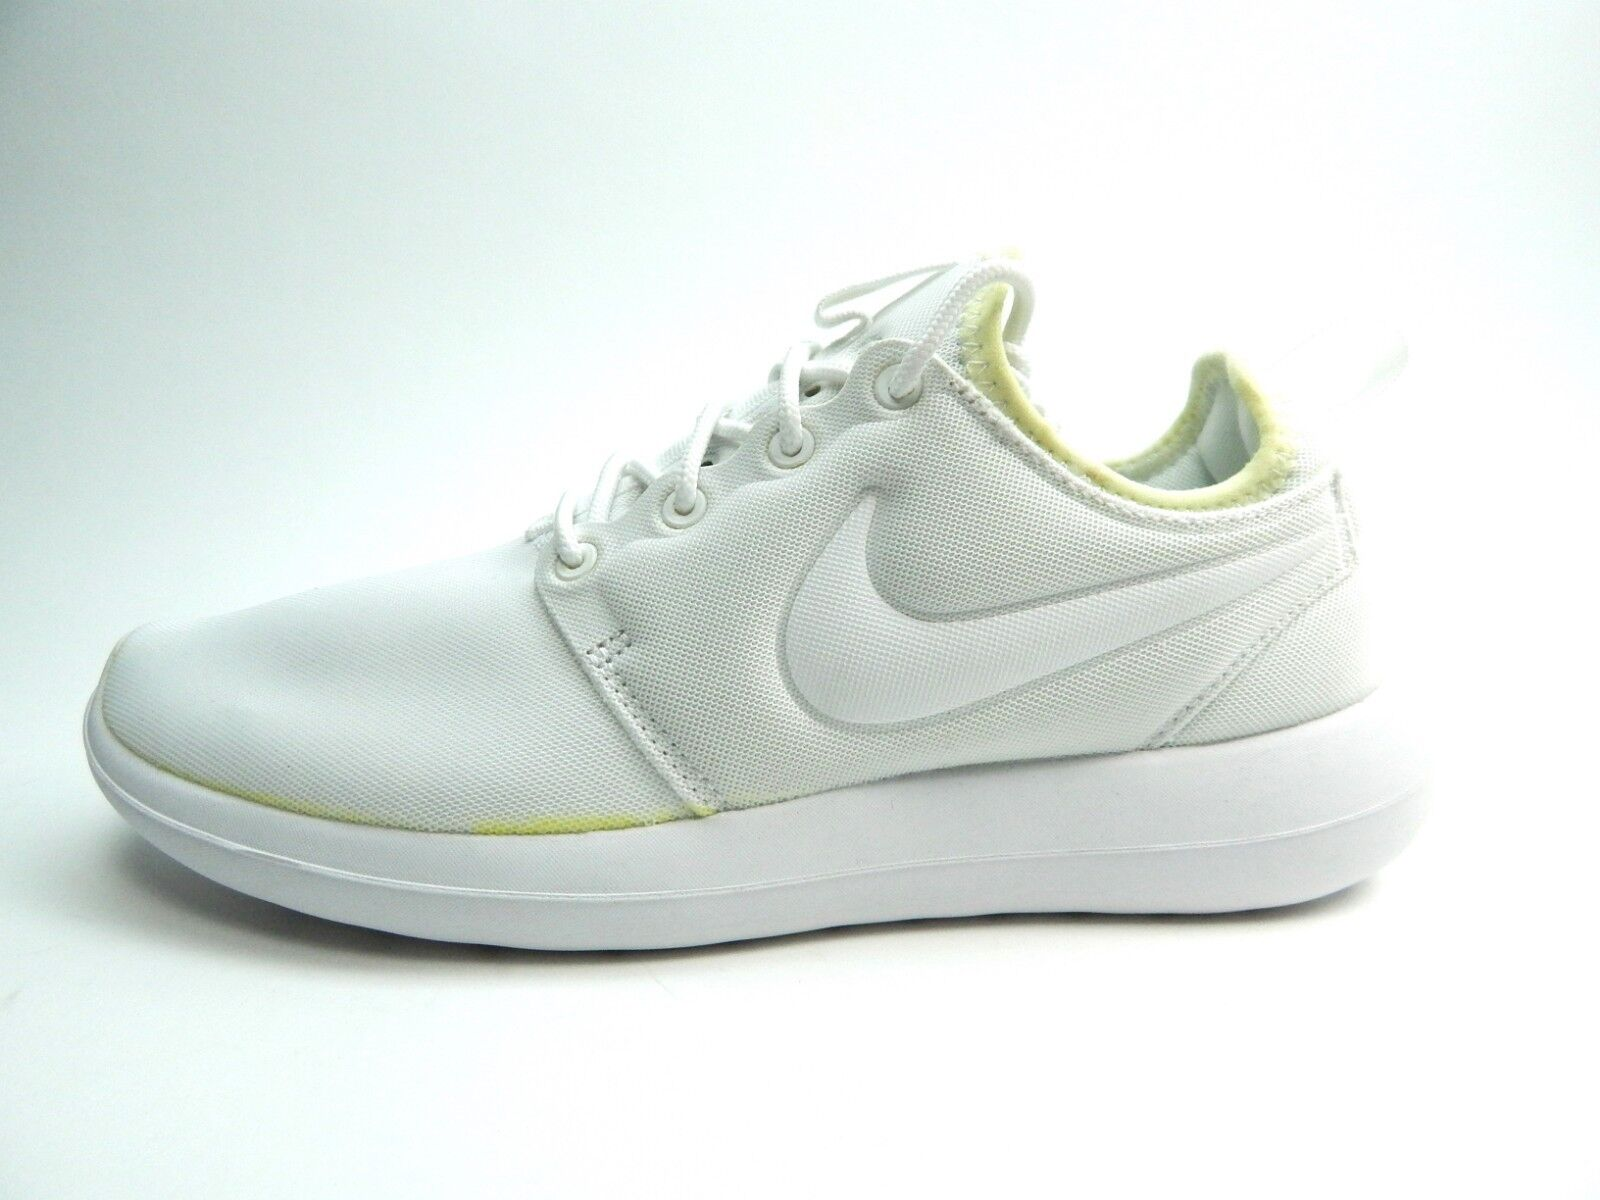 NIKE ROSHE New with defects WOMEN SHOES SIZE 7.0 WHITE 844931-100 Cheap women's shoes women's shoes